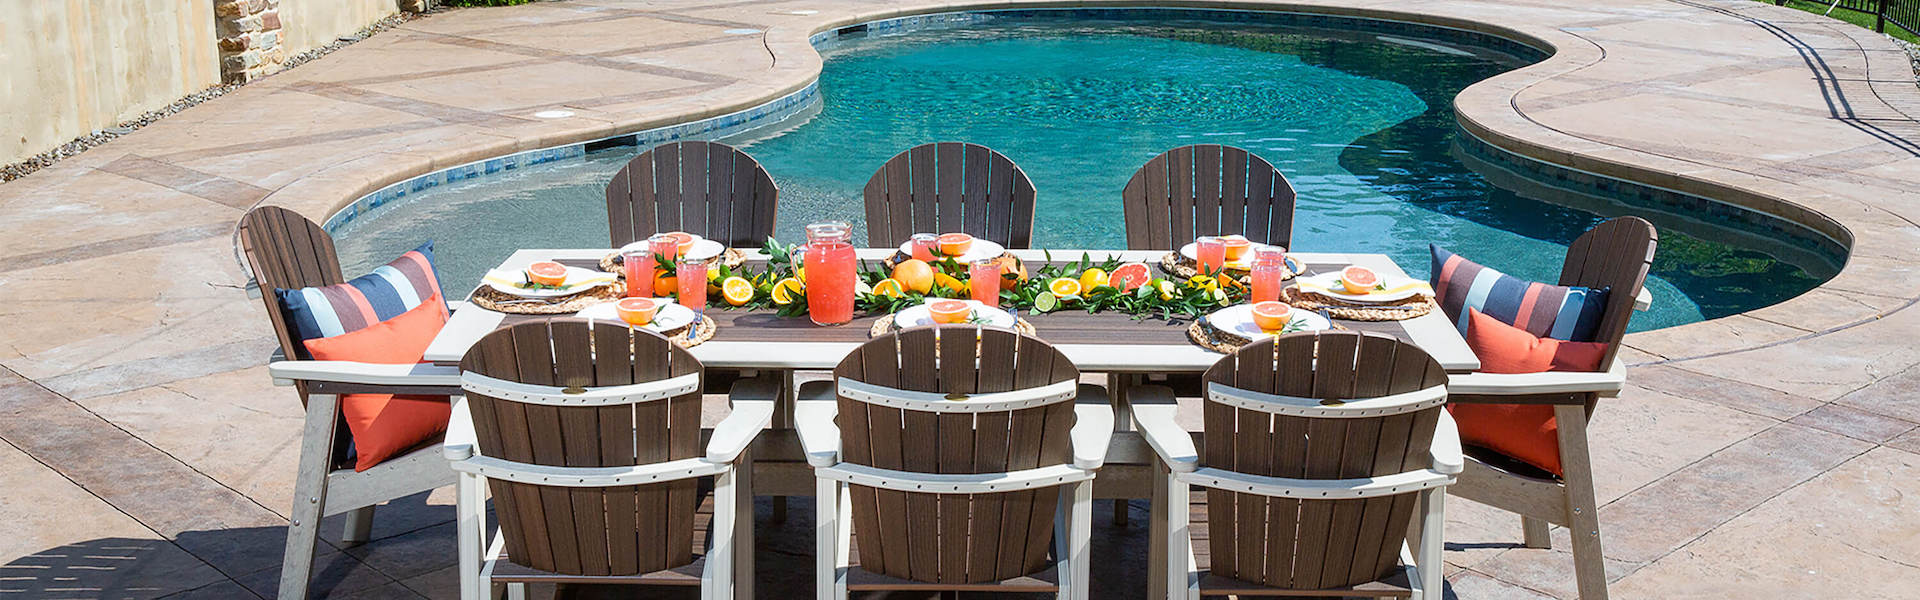 Poly Outdoor Furniture dining set on pool patio